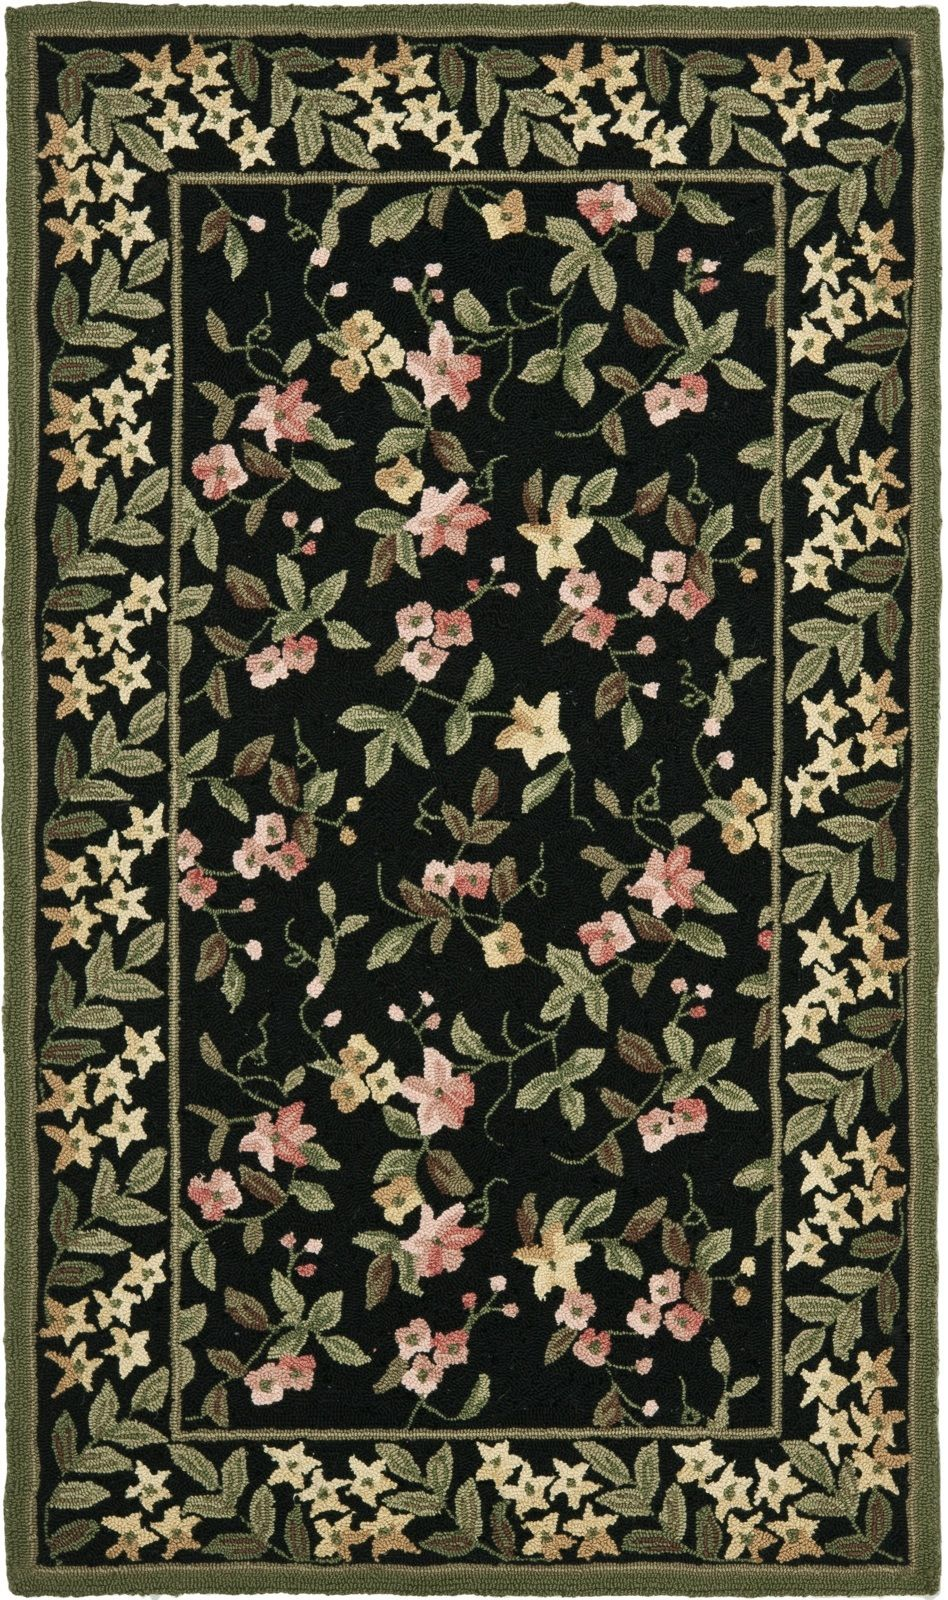 safavieh wilton country & floral area rug collection